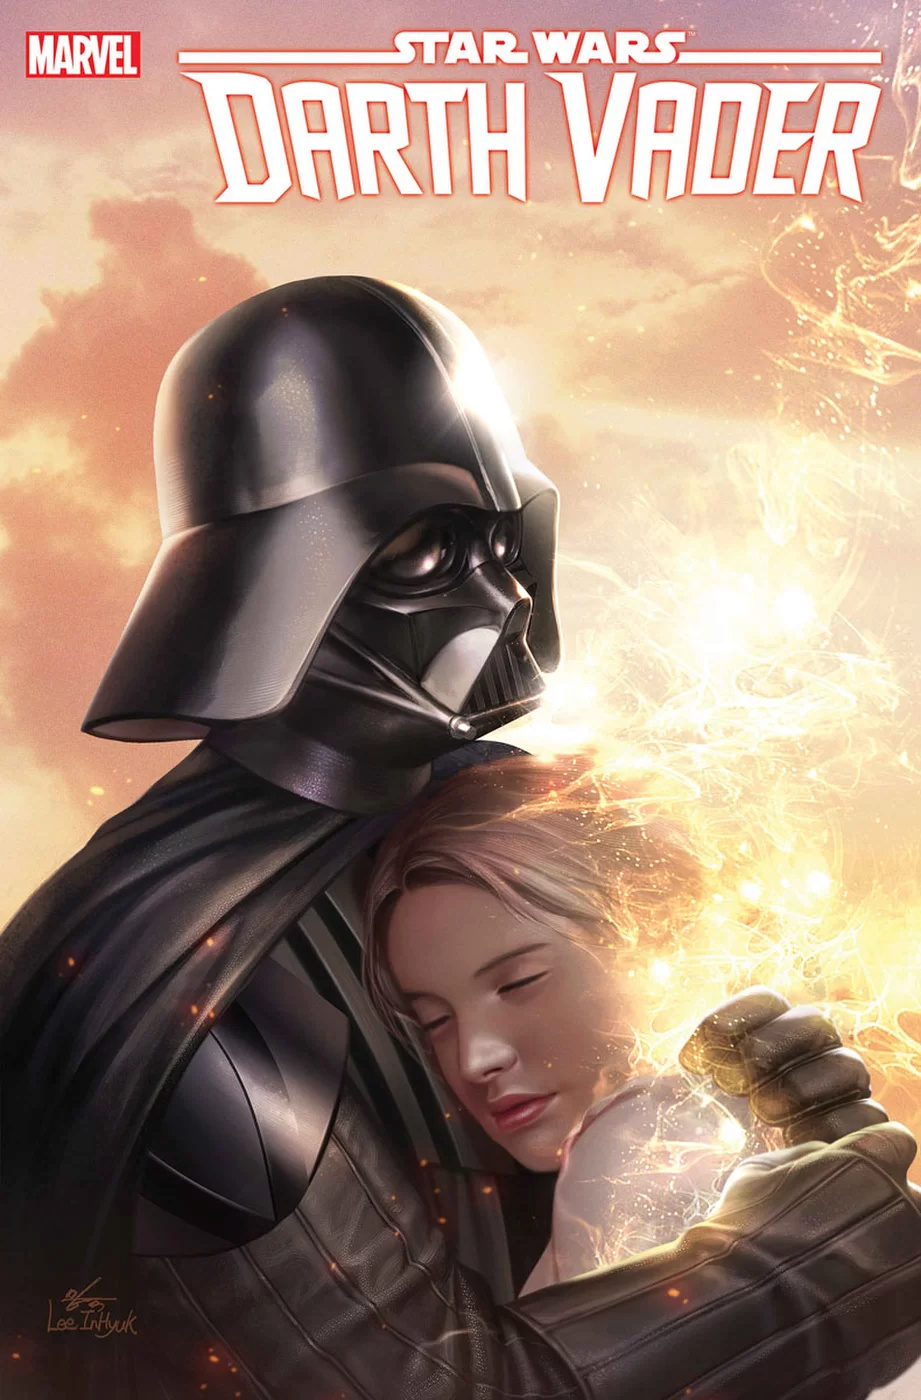 Star Wars Darth Vader 2020 - Marvel Darth141